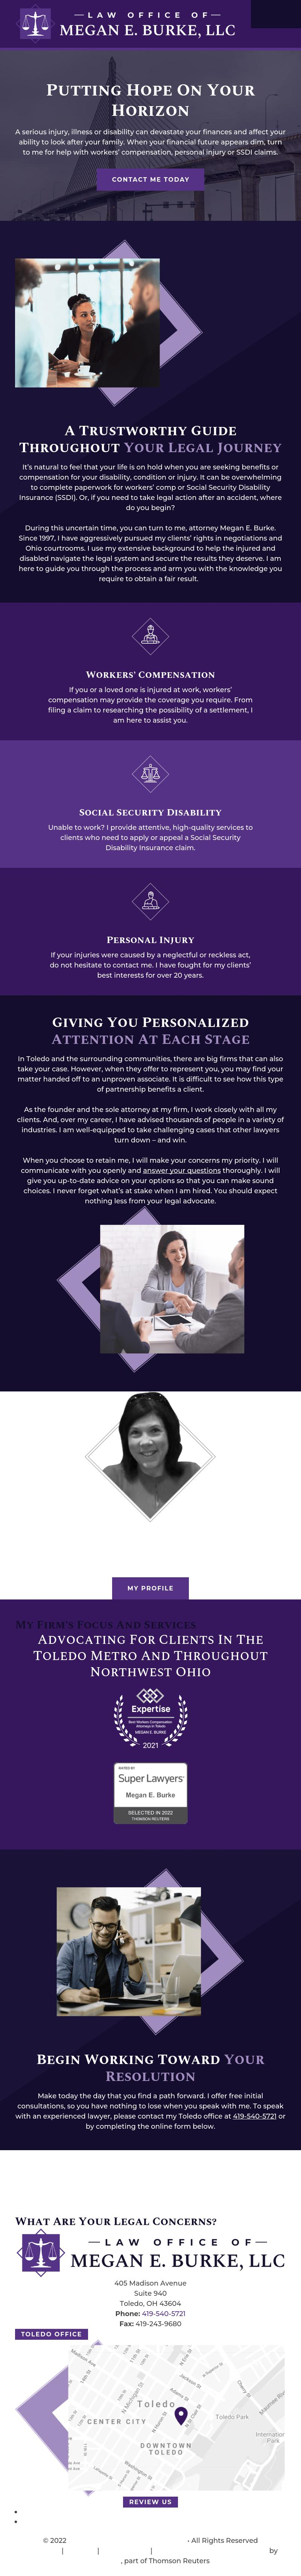 Law Offices of Megan Burke LLC - Toledo OH Lawyers